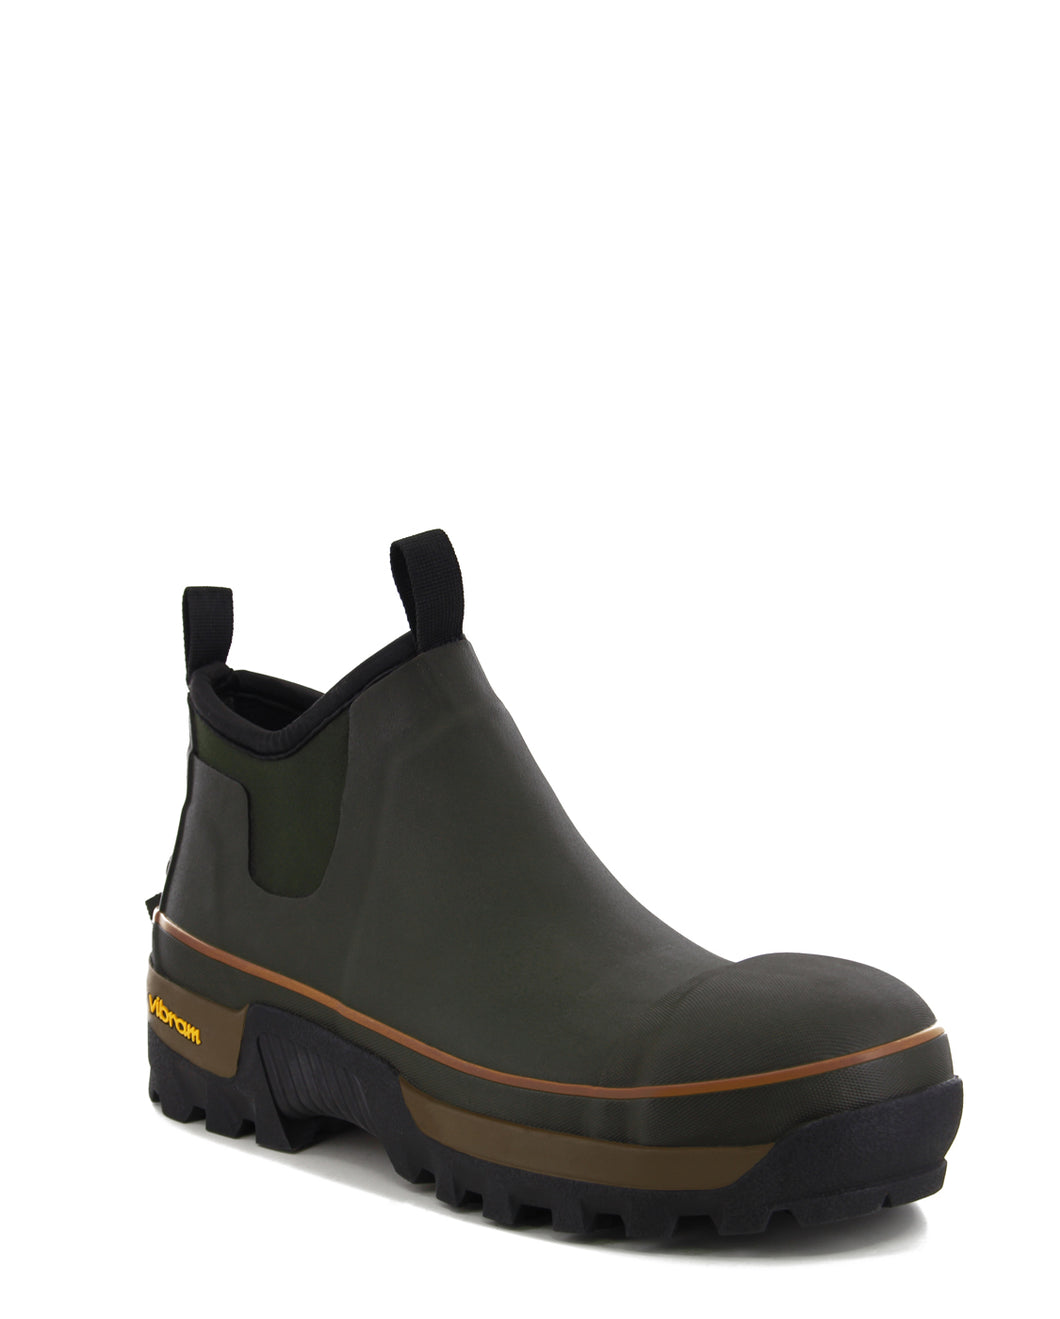 Men's Safety Neoprene Ankle Winter Snow Boot - Olive